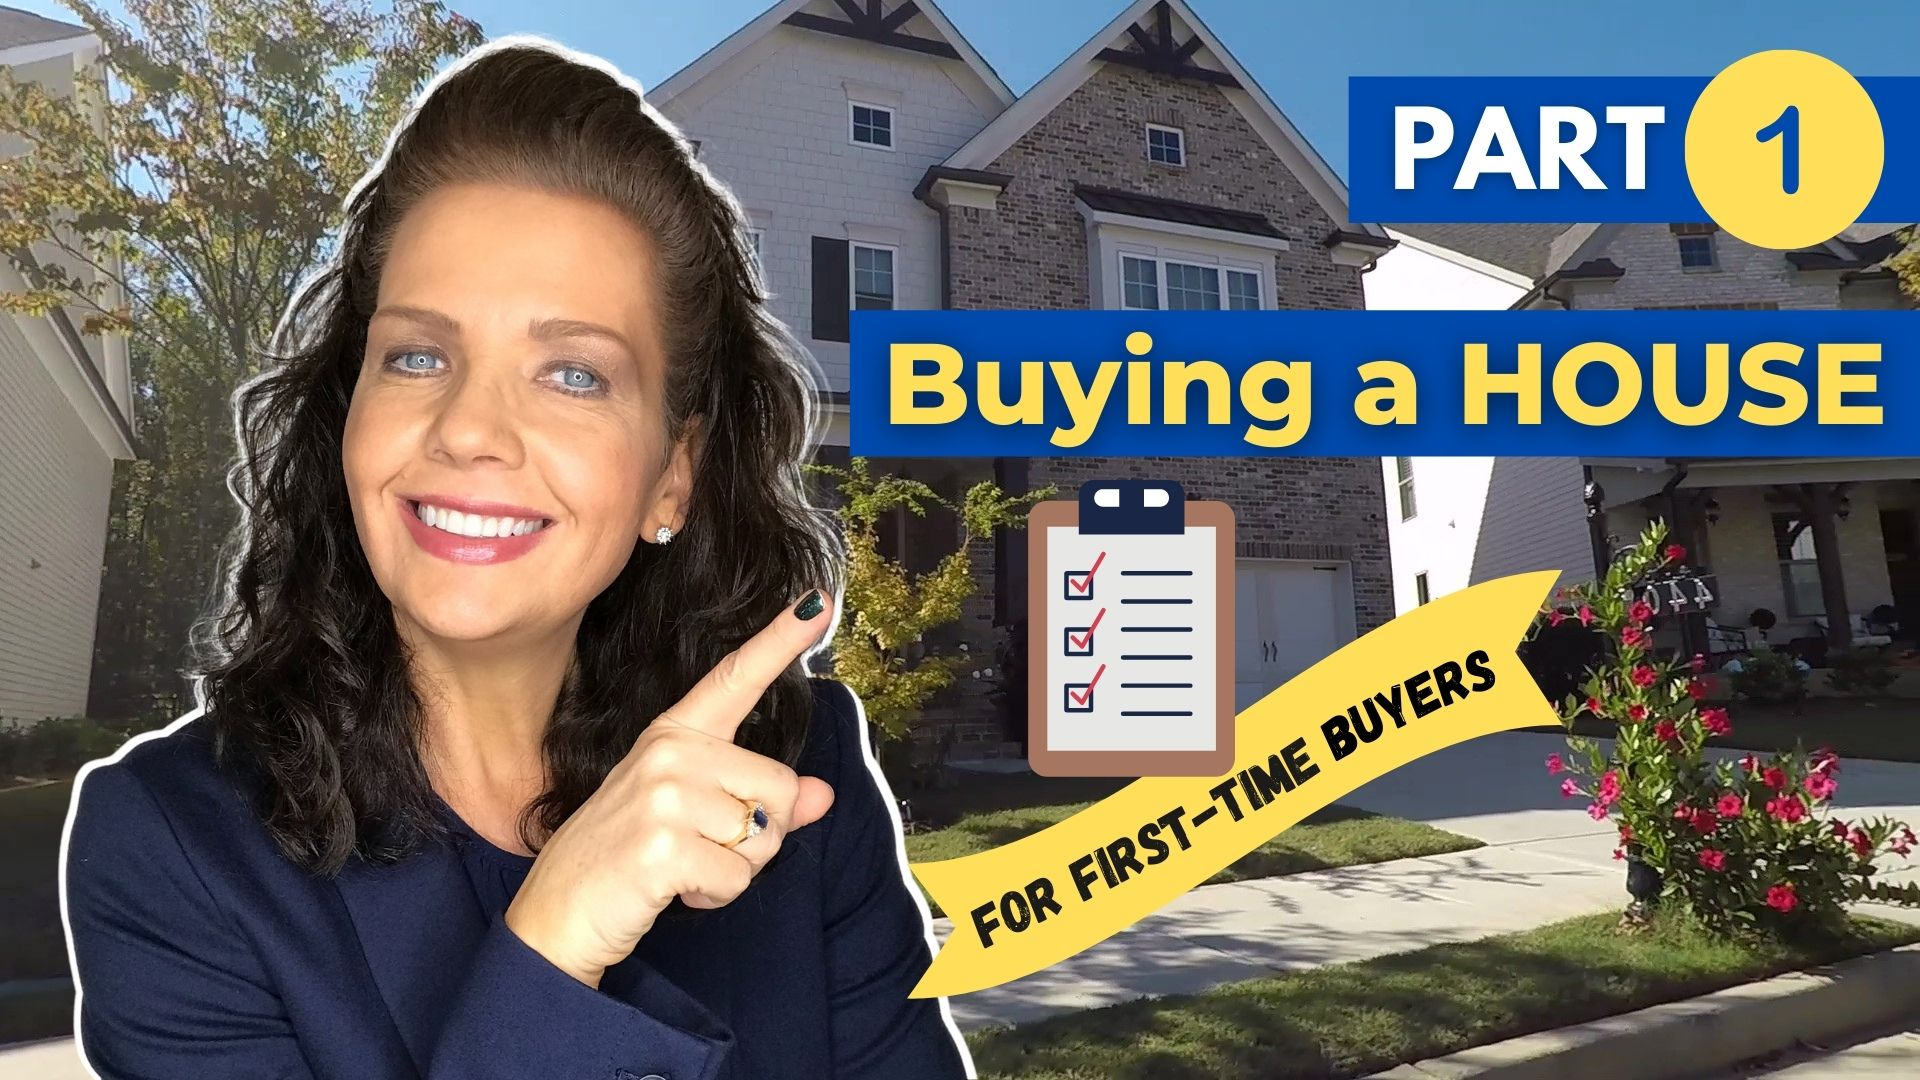 Buying a House Checklist for First-Time Buyers – Part 1